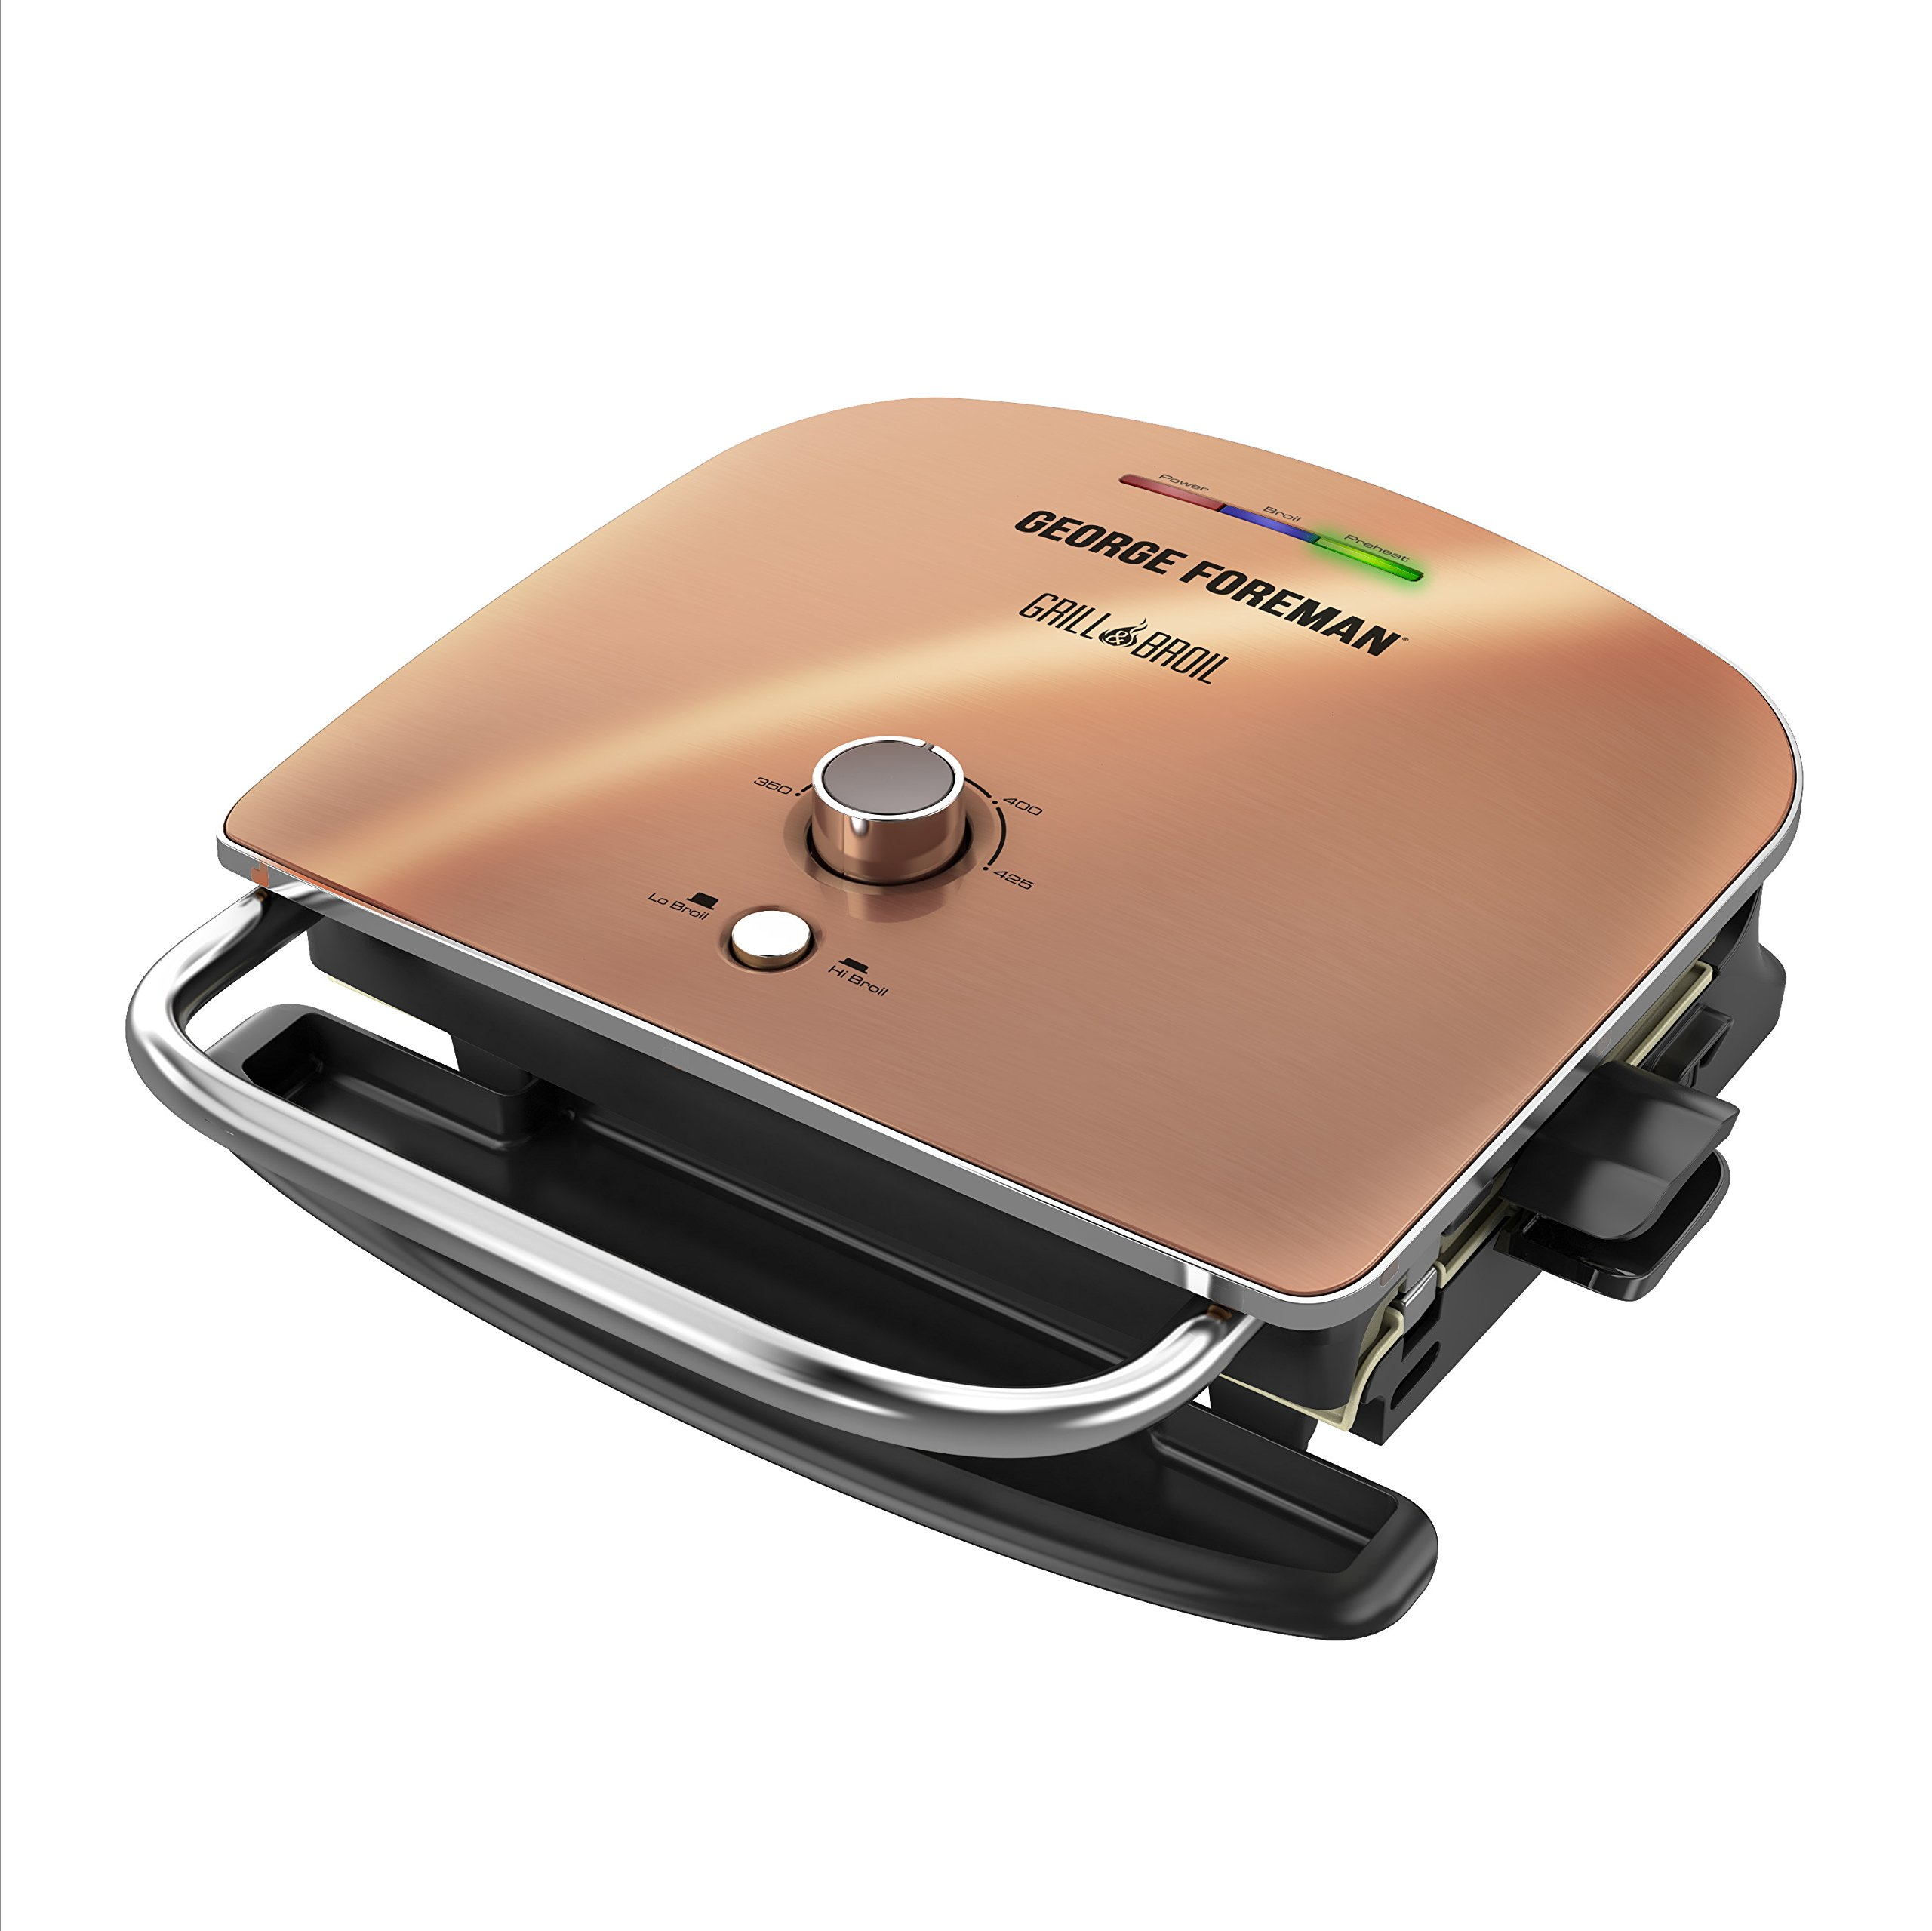 George Foreman Grill & Broil, 4-in-1 Electric Indoor Grill, Broiler, Panini Press, and Top Melter, Copper, GRBV5130CUX by George Foreman